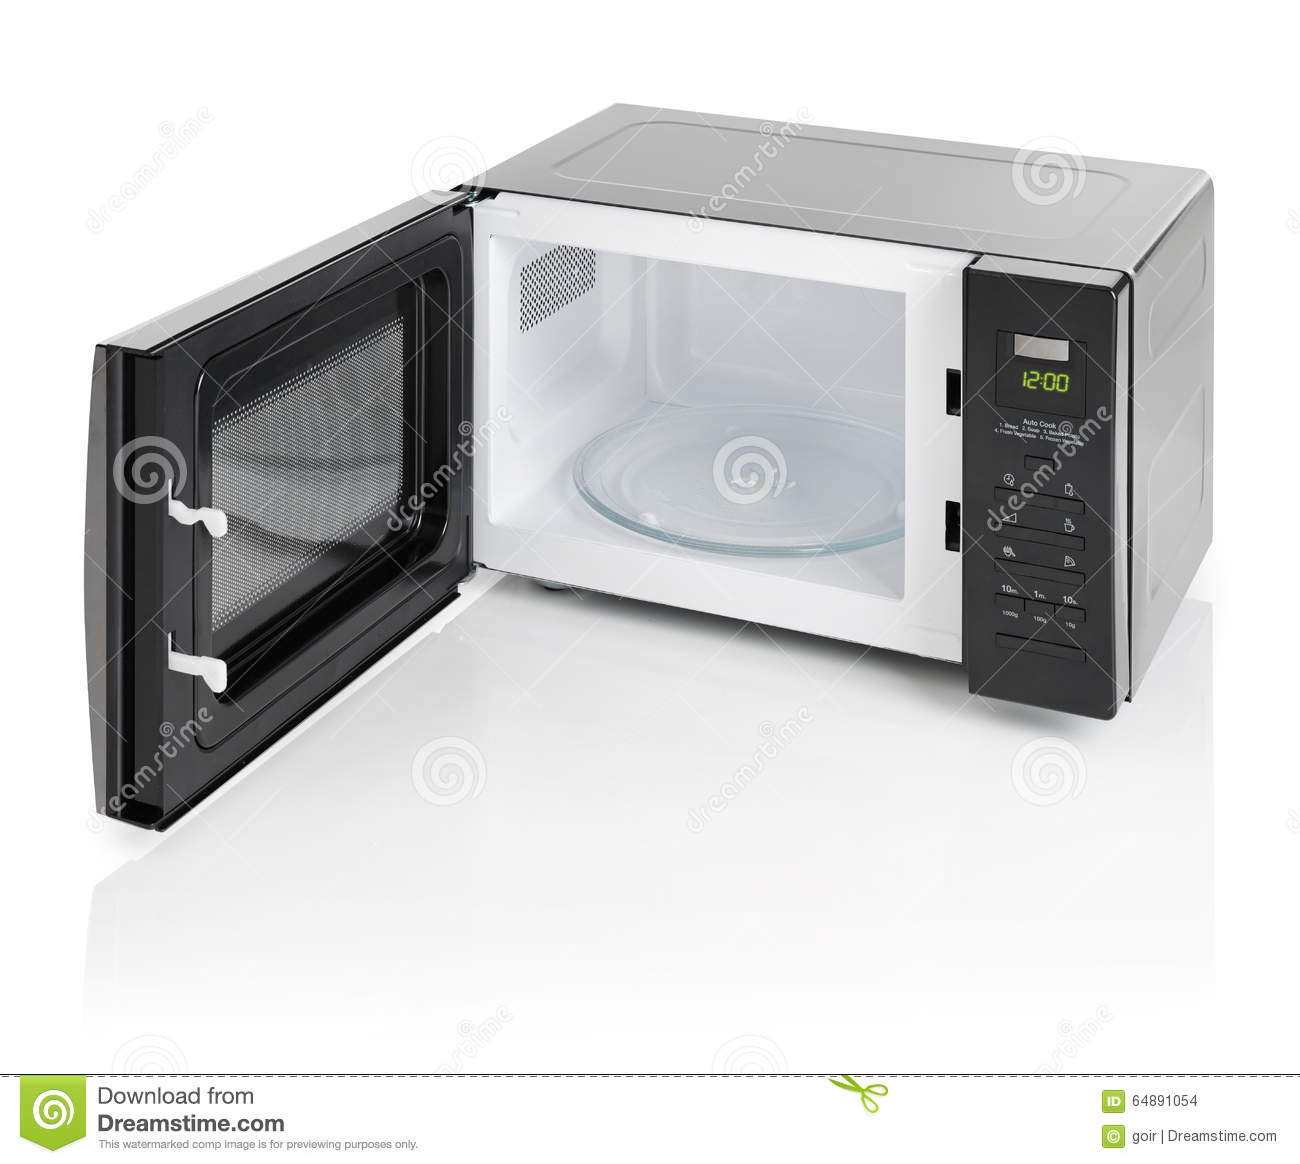 Microwave Oven Isolated Stock Photo - Image: 64891054